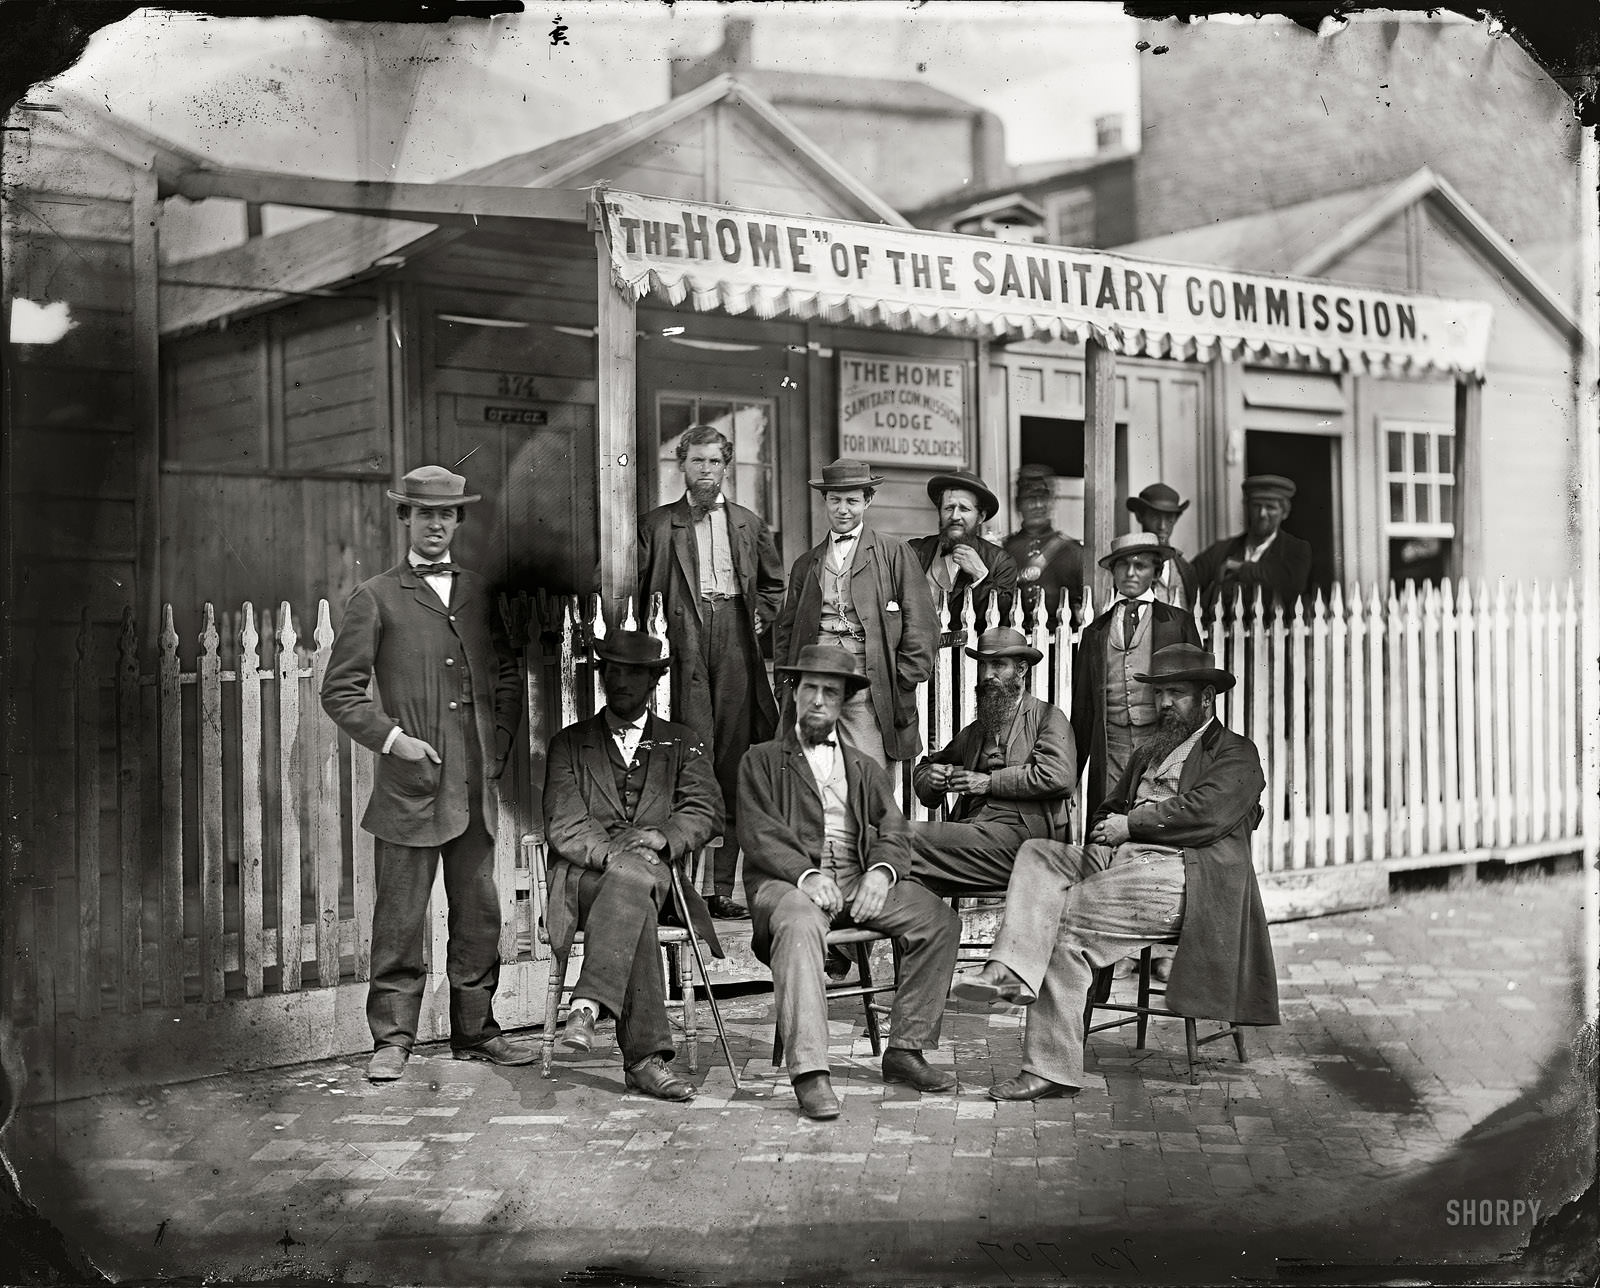 Washington, D.C. Sanitary Commission workers at the entrance of the Home Lodge for Invalid Soldiers, Washington, D.C., 1863.